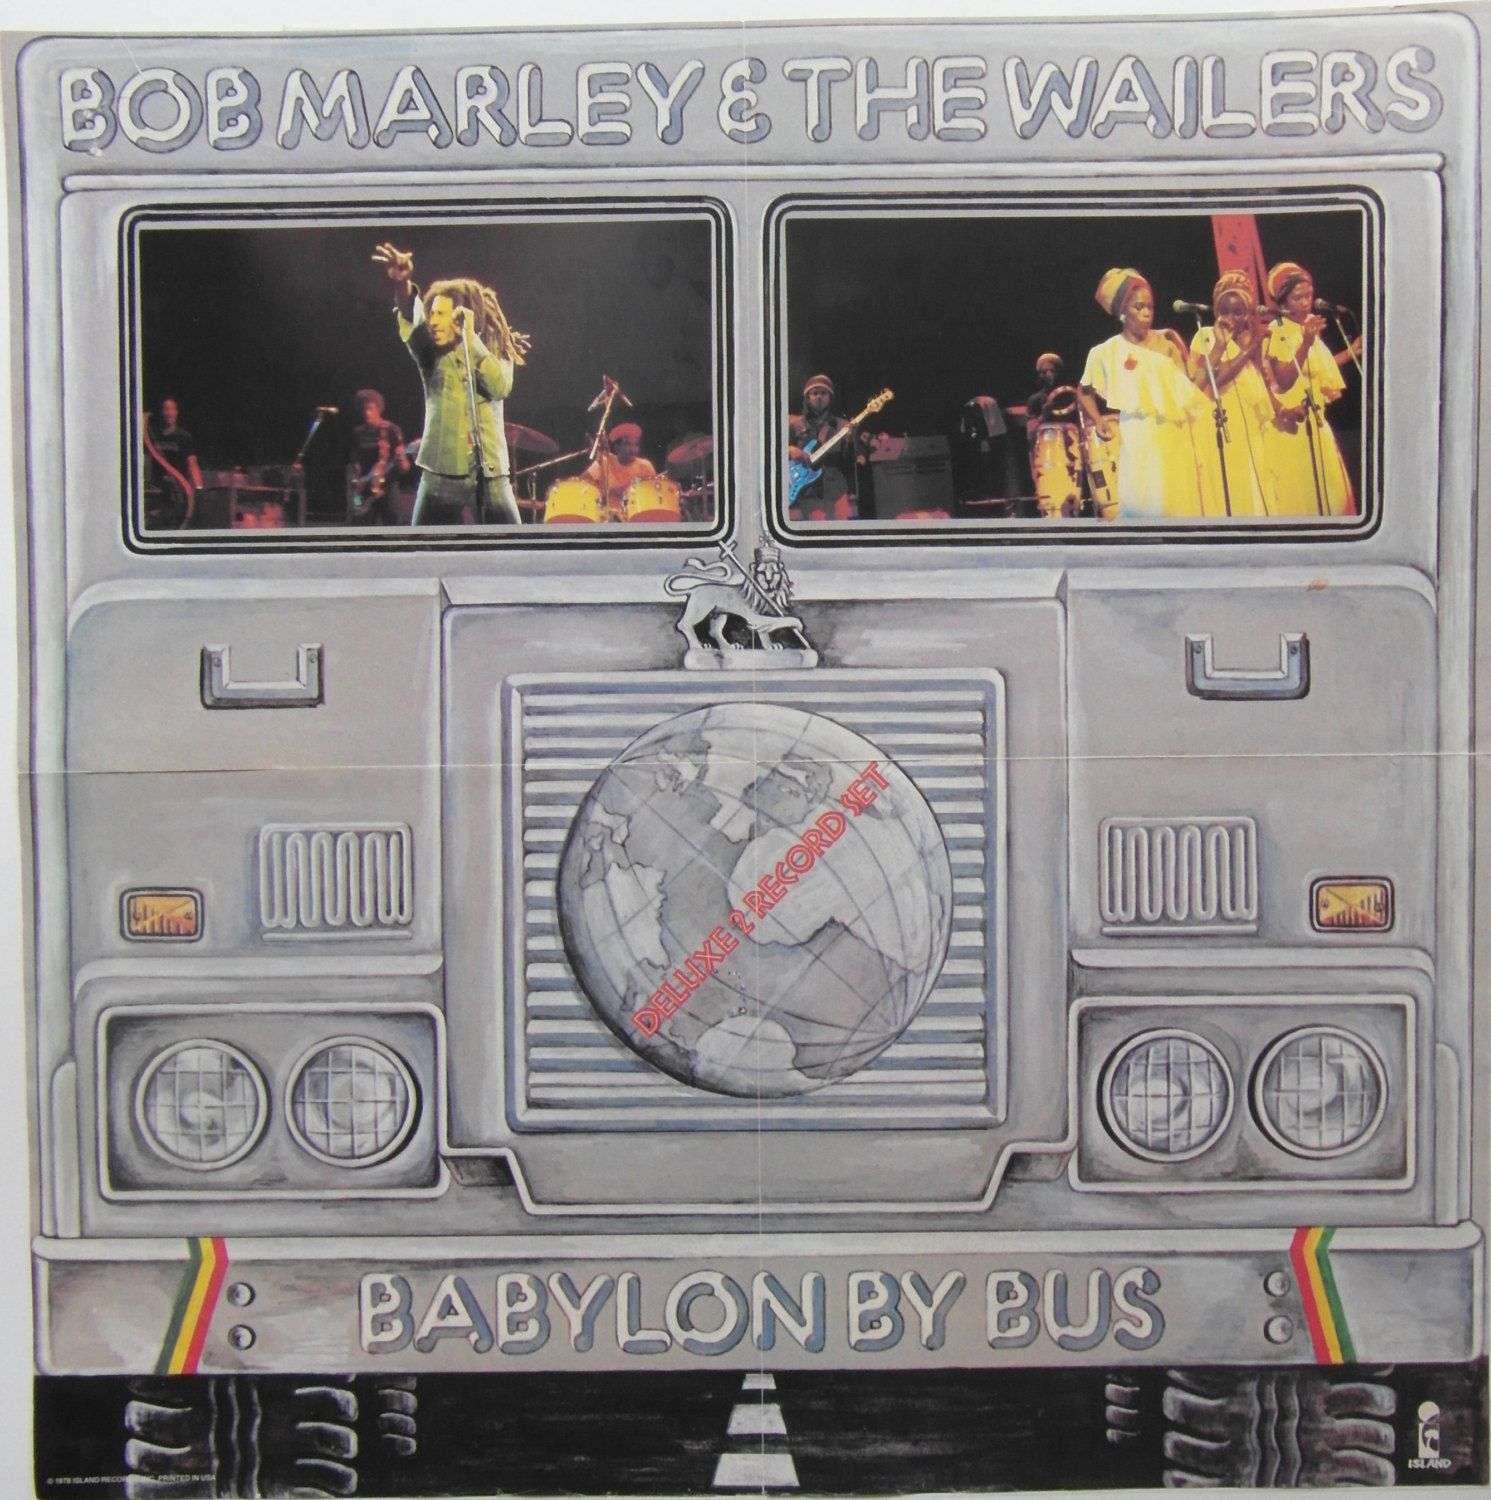 Original 1978 Bob Marley Island Records Insert Poster For The Live Album Babylon By Bus The Wailers Bob Marley Marley